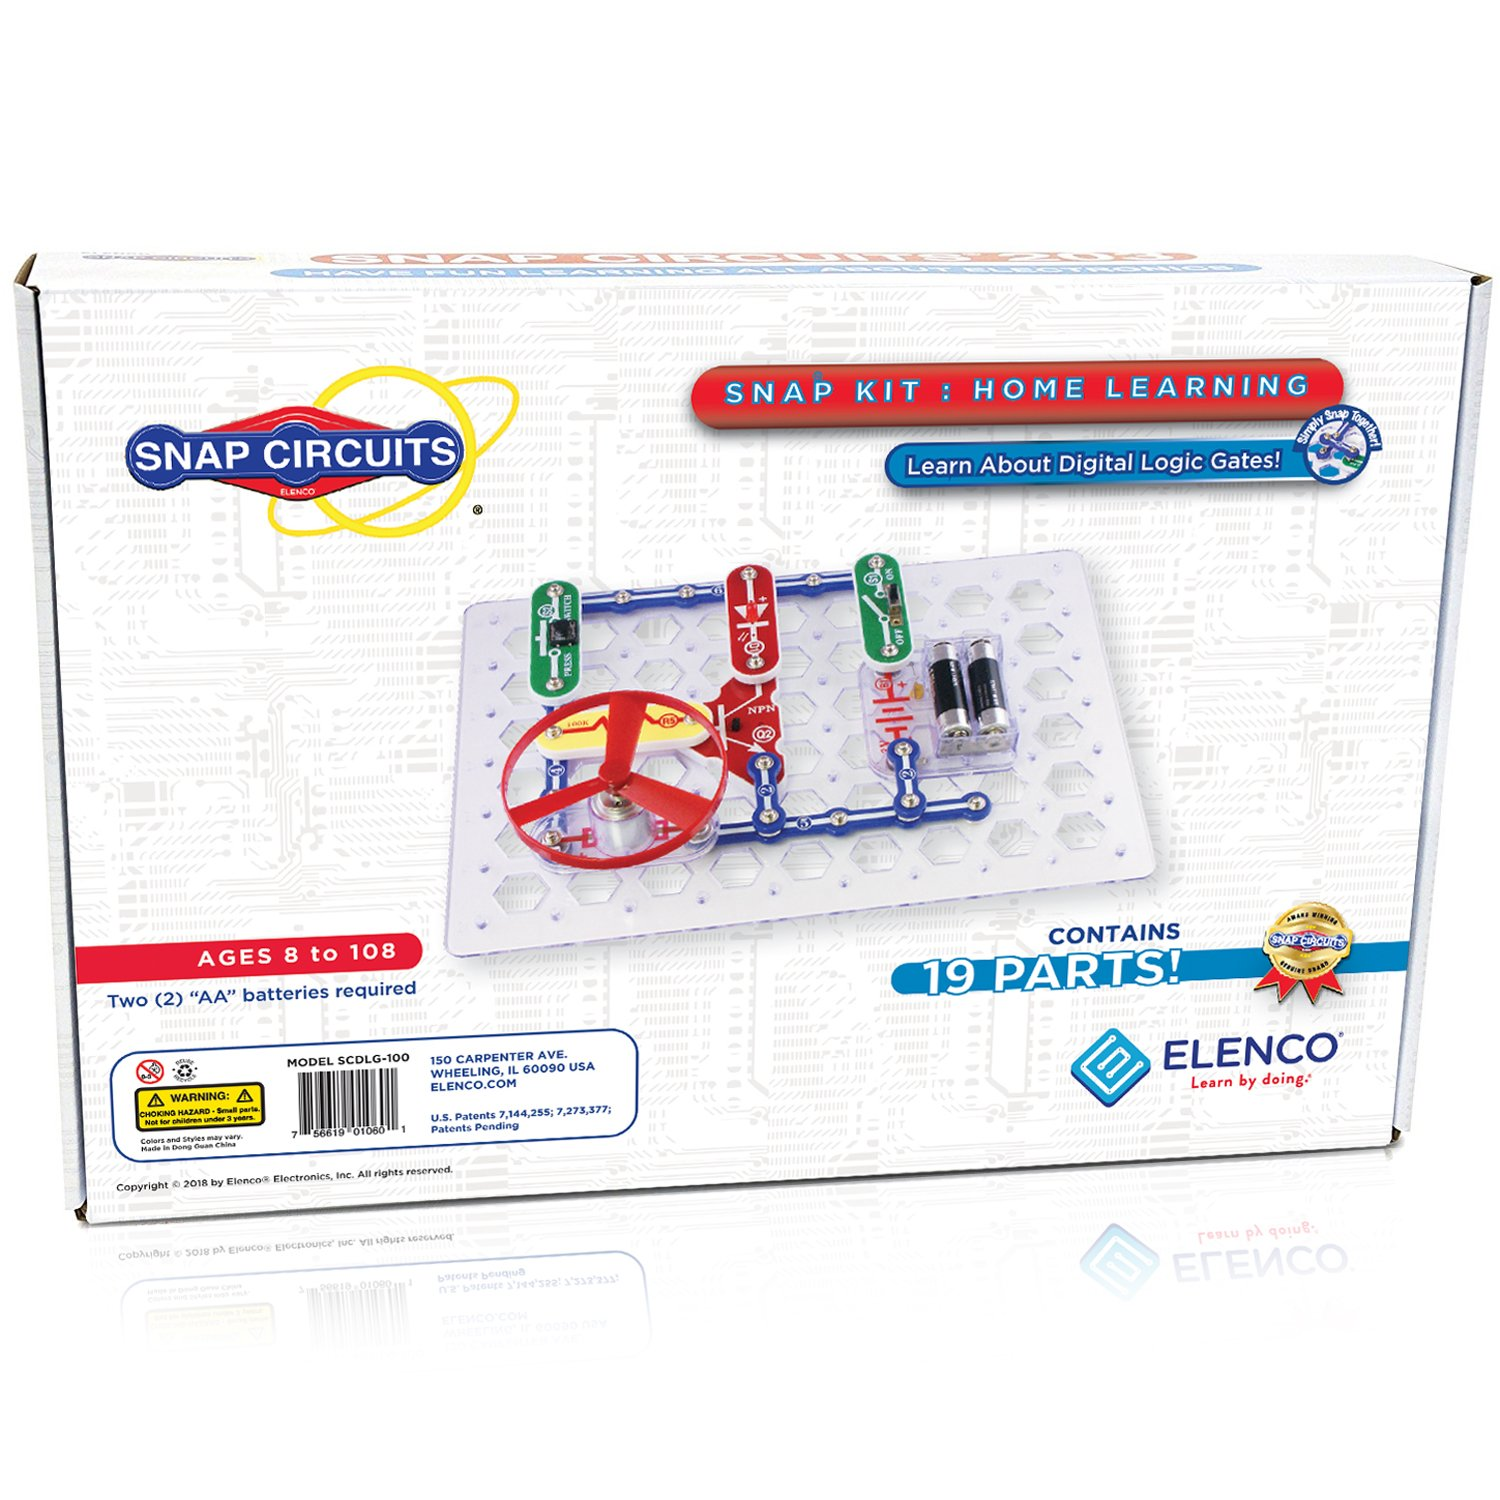 Snap Circuits Home School Education Electronics Exploration Kit | Over 30 STEM Projects | 4-Color Project Manual | 19 Snap Modules | Perfect for STEM Curriculum